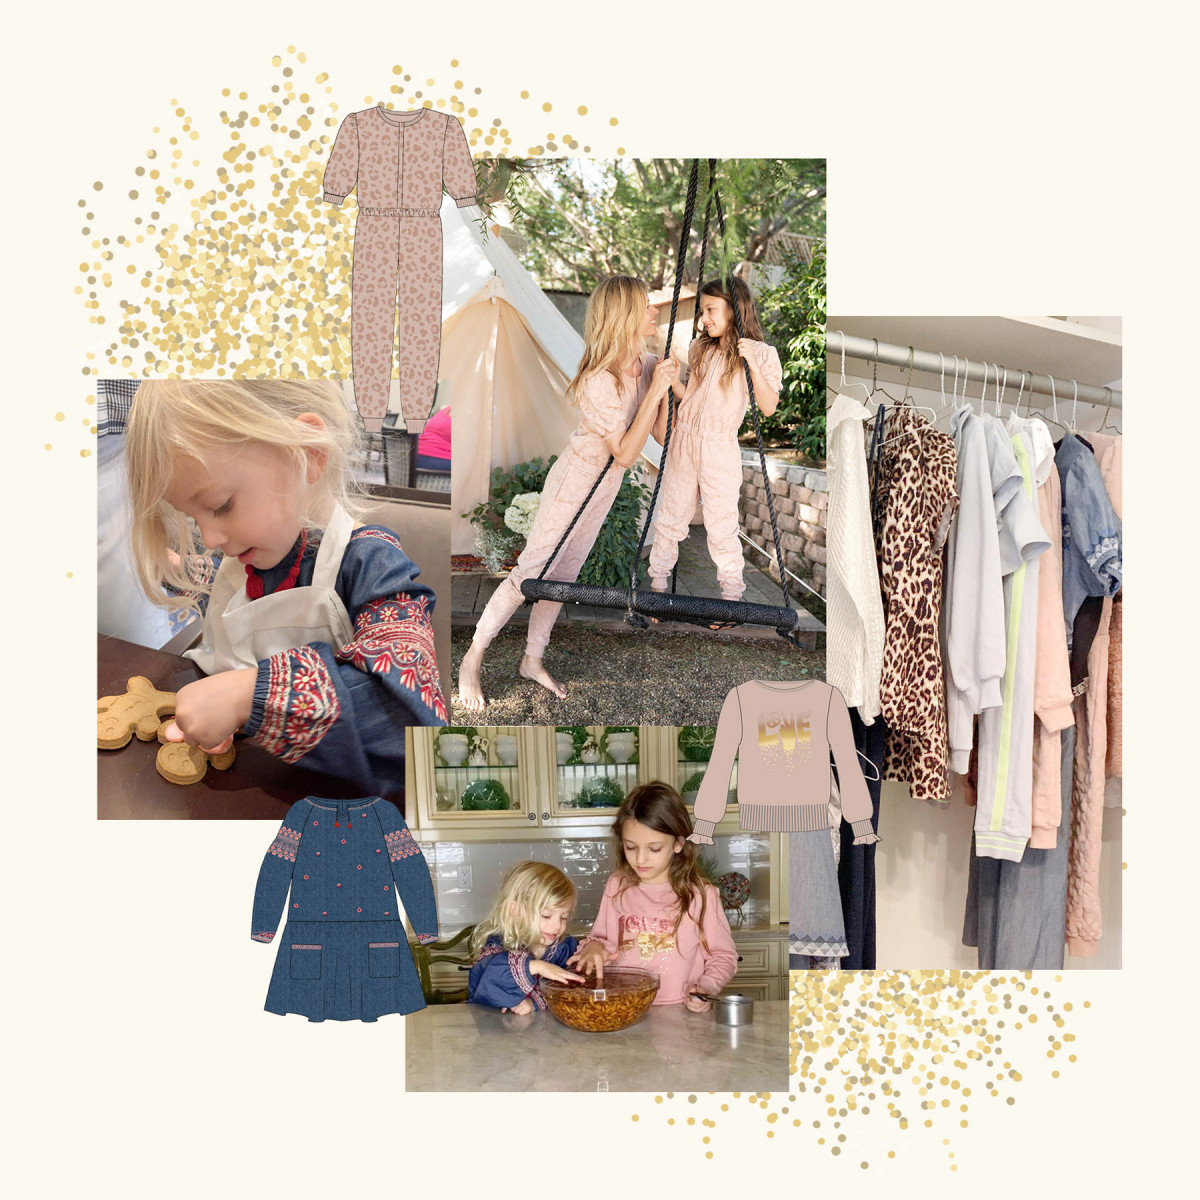 Styling Tip #4: Re-organising and Curating your wardrobe